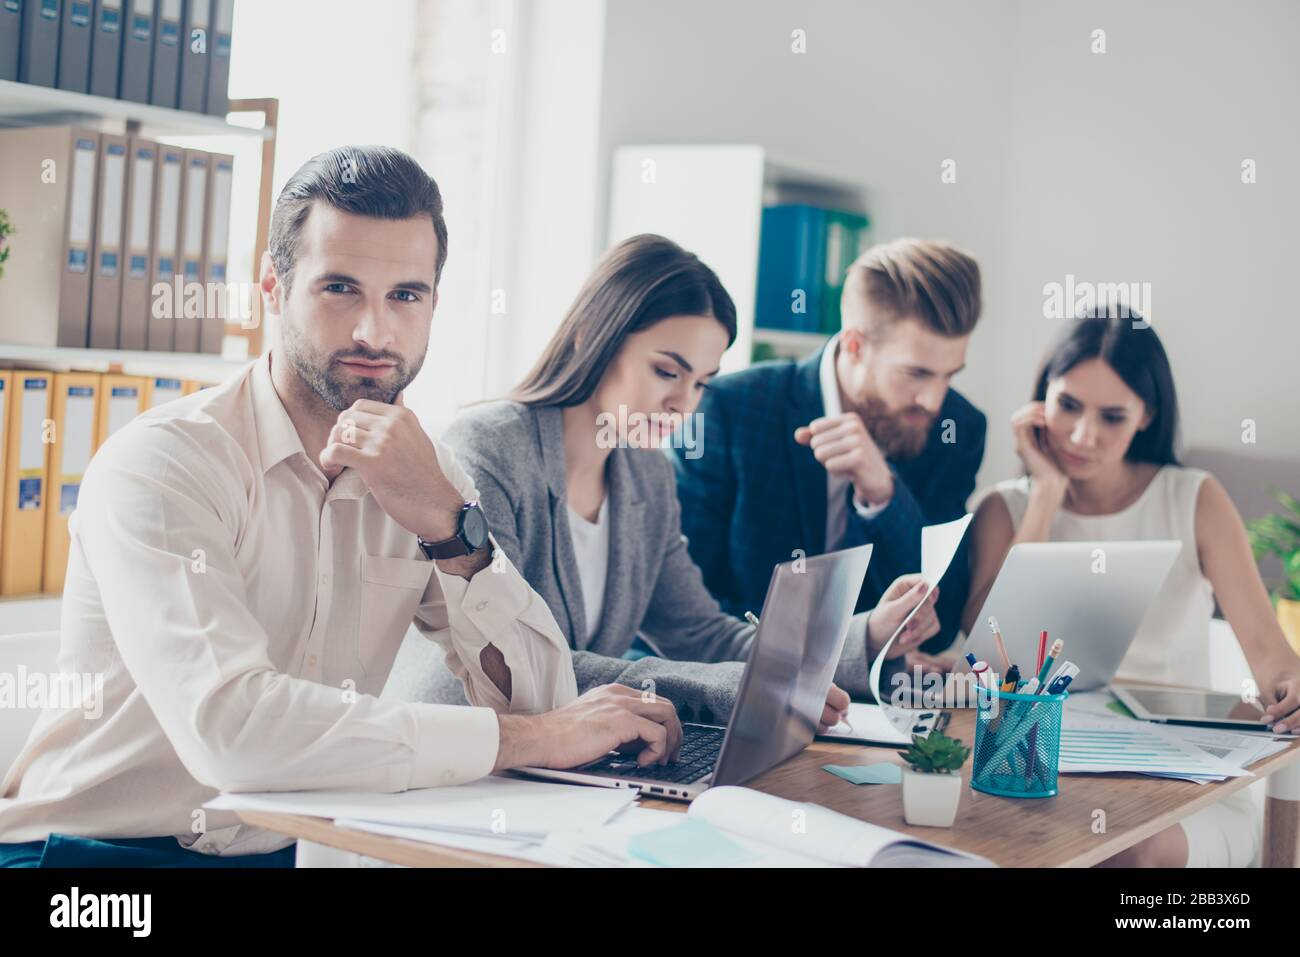 Close up of young business people in formal wear discussing something seriously while sitting together at the table in light modern workplace Stock Photo